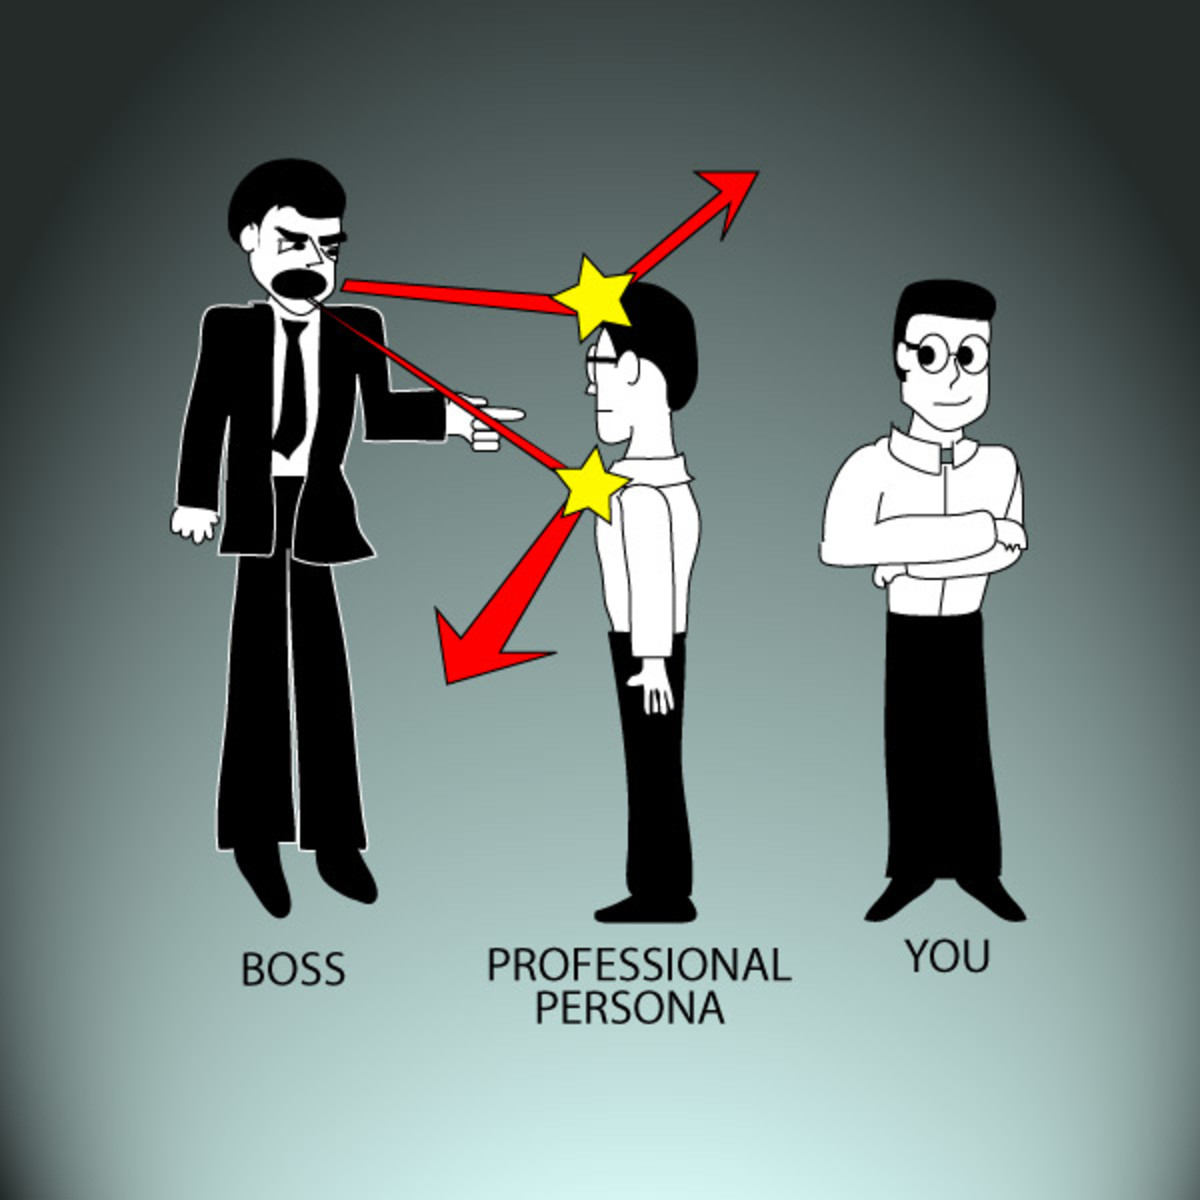 How to Deal With the Verbally Abusive Boss